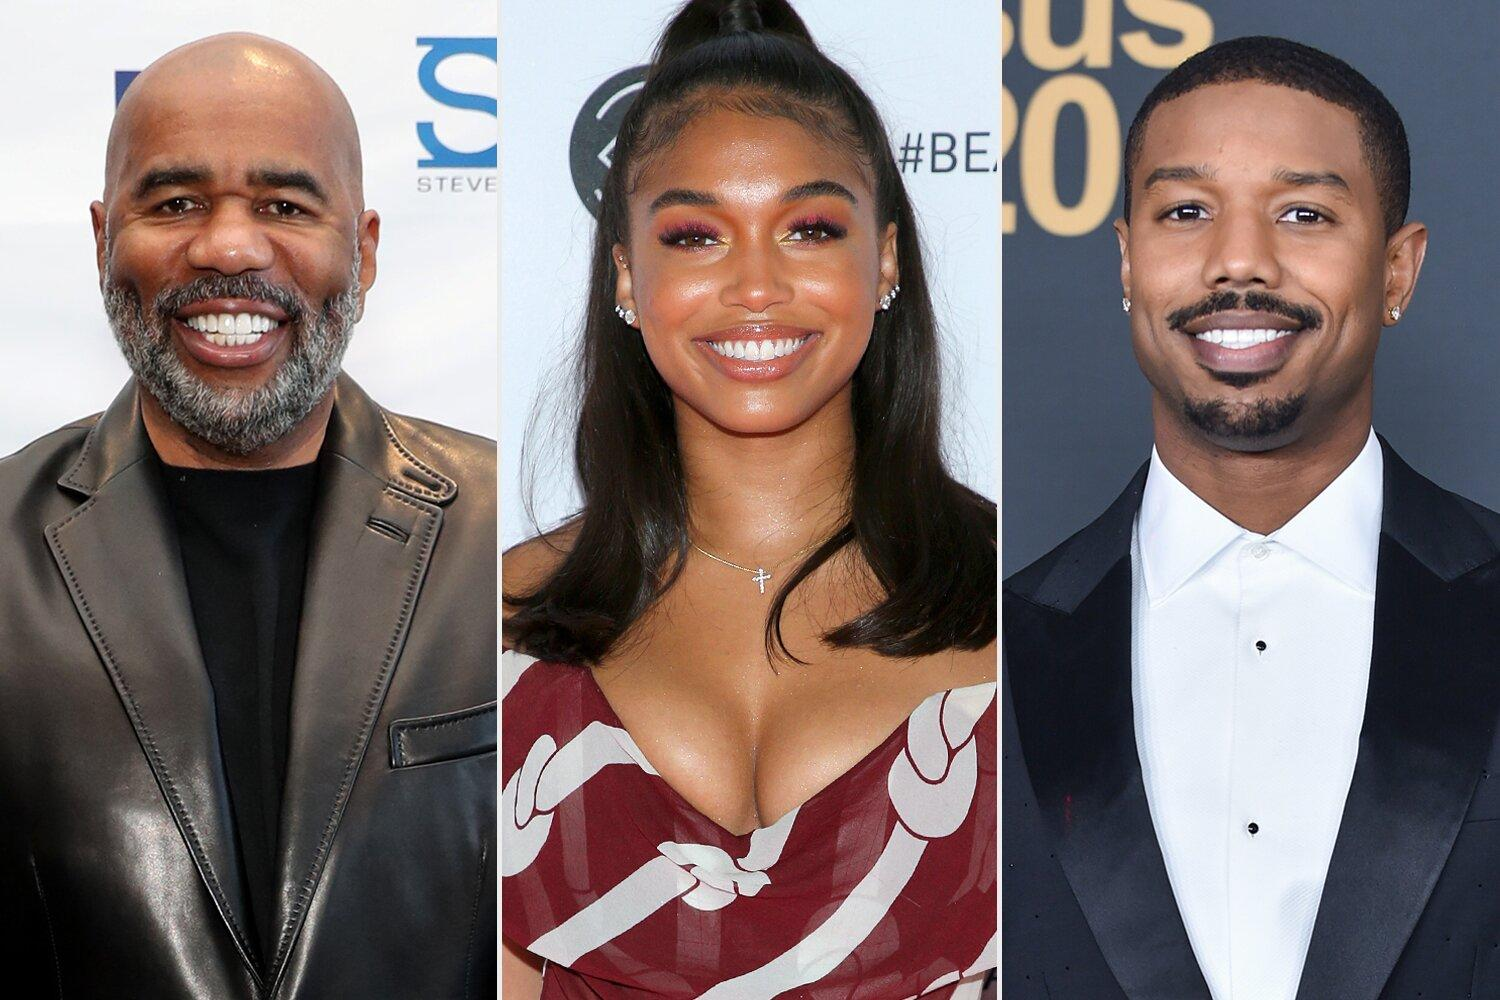 Steve Harvey Reacts to Daughter Lori's Relationship with Michael B. Jordan: 'Got My Eye on Him'